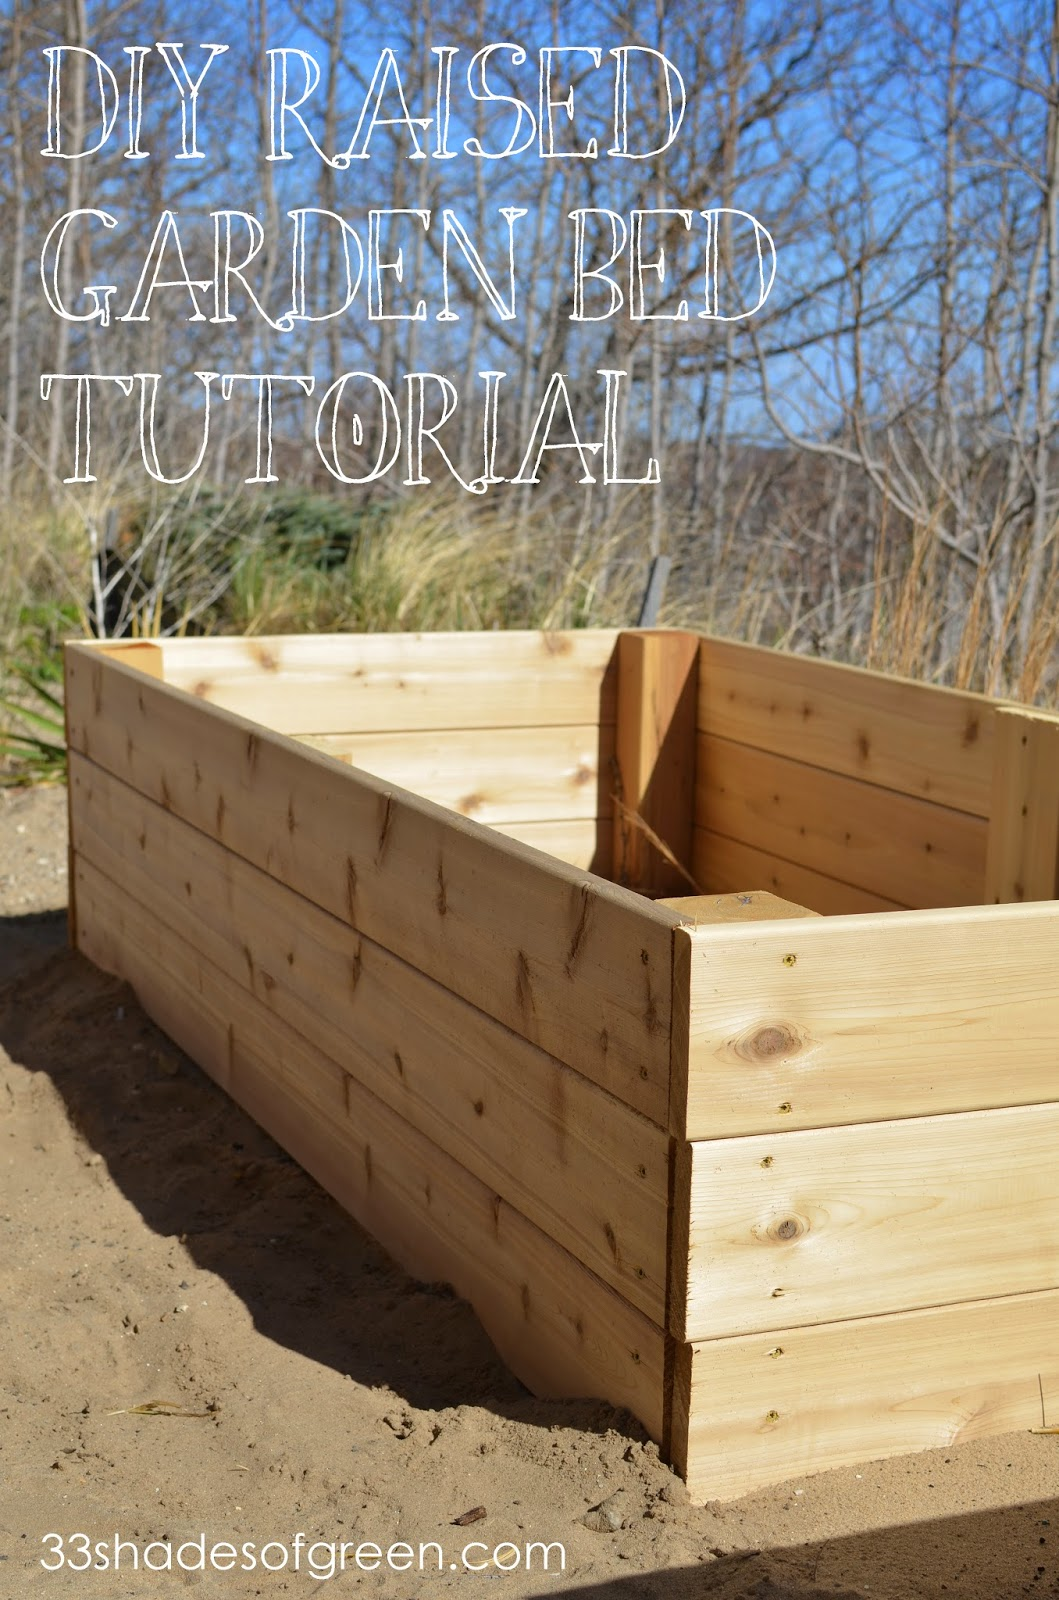 pin to raising list really diy unique these some projects can of build project you fantastic is a easy start garden are and raised here ideas today bed